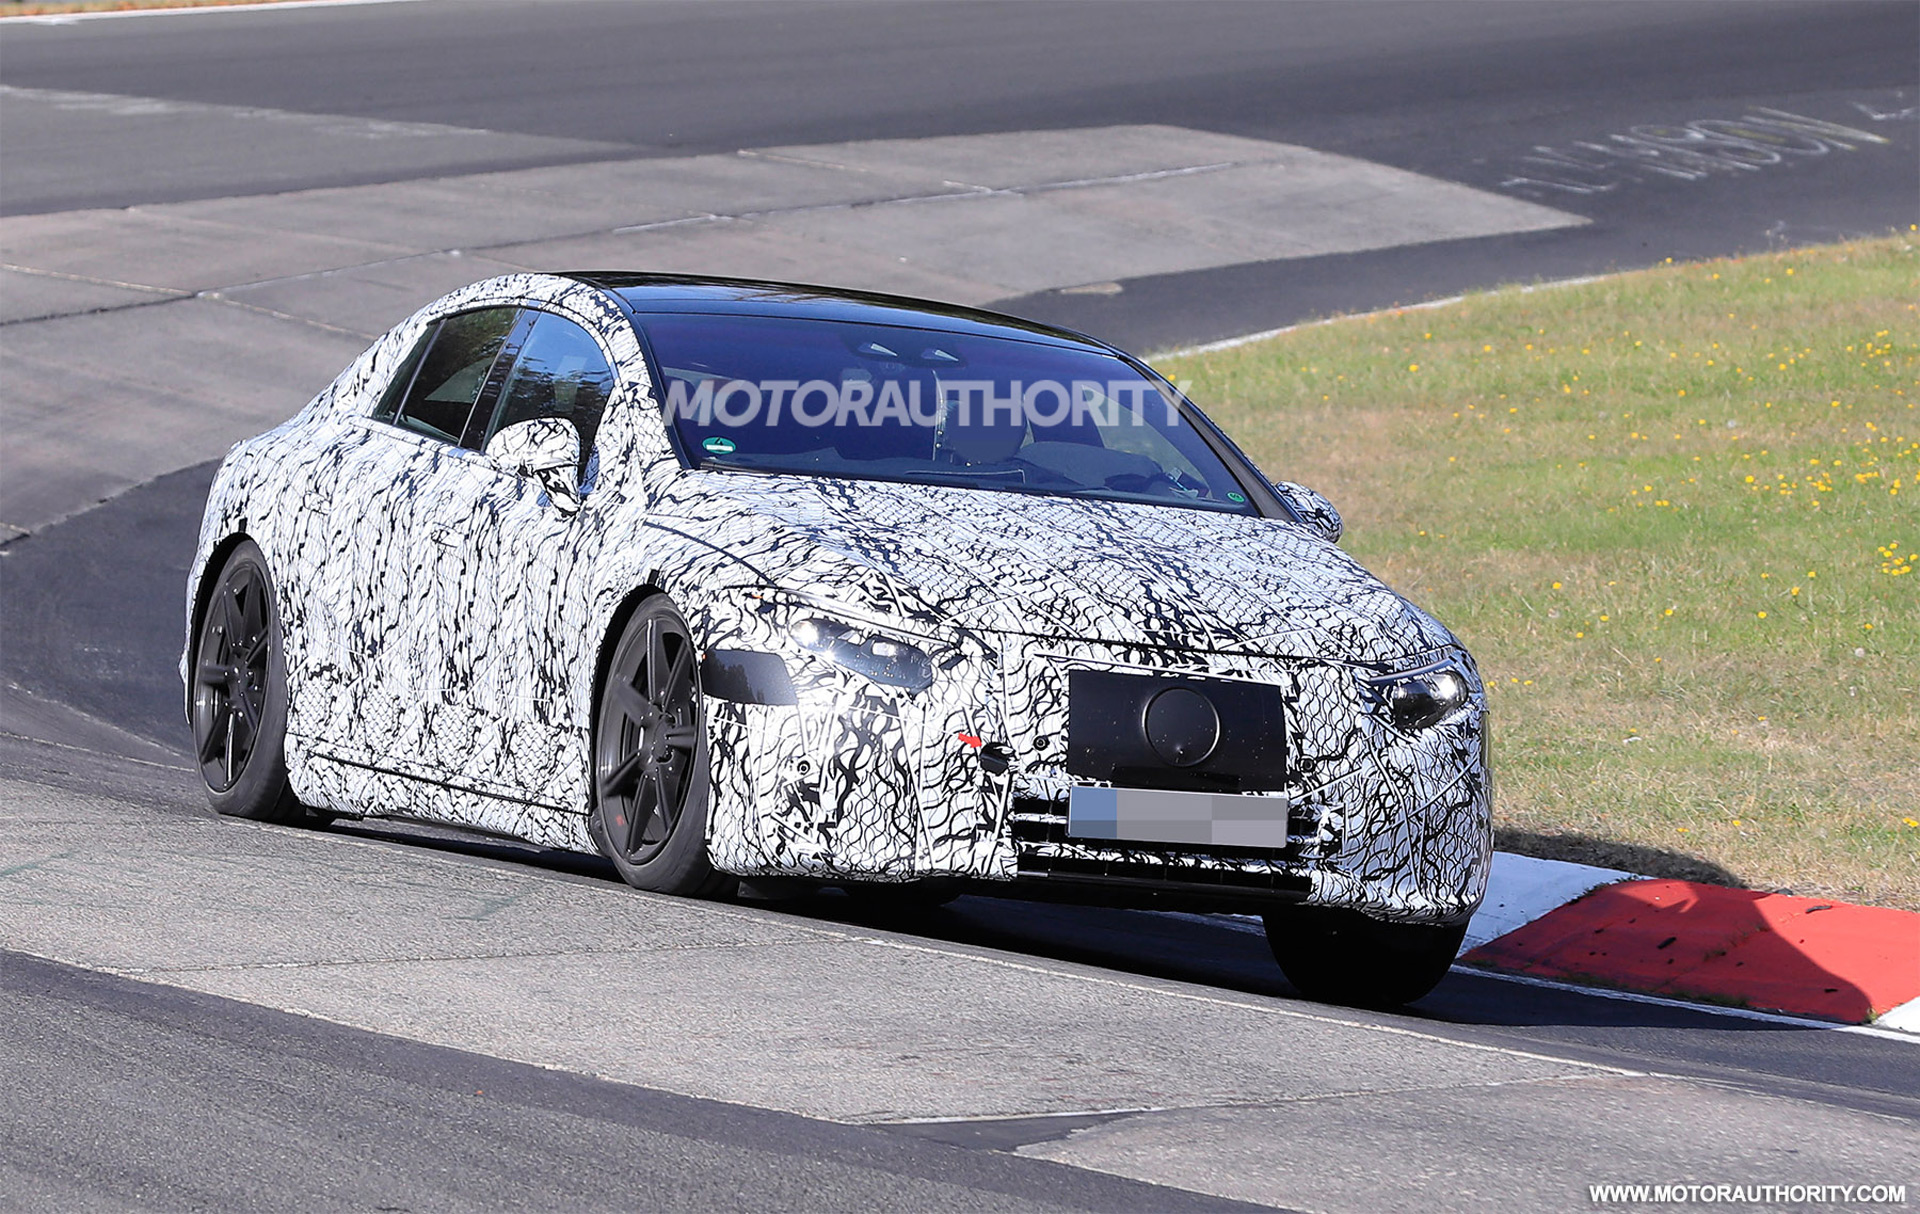 2022 Mercedes-Benz EQS spy shots: Electric sedan's interior spotted